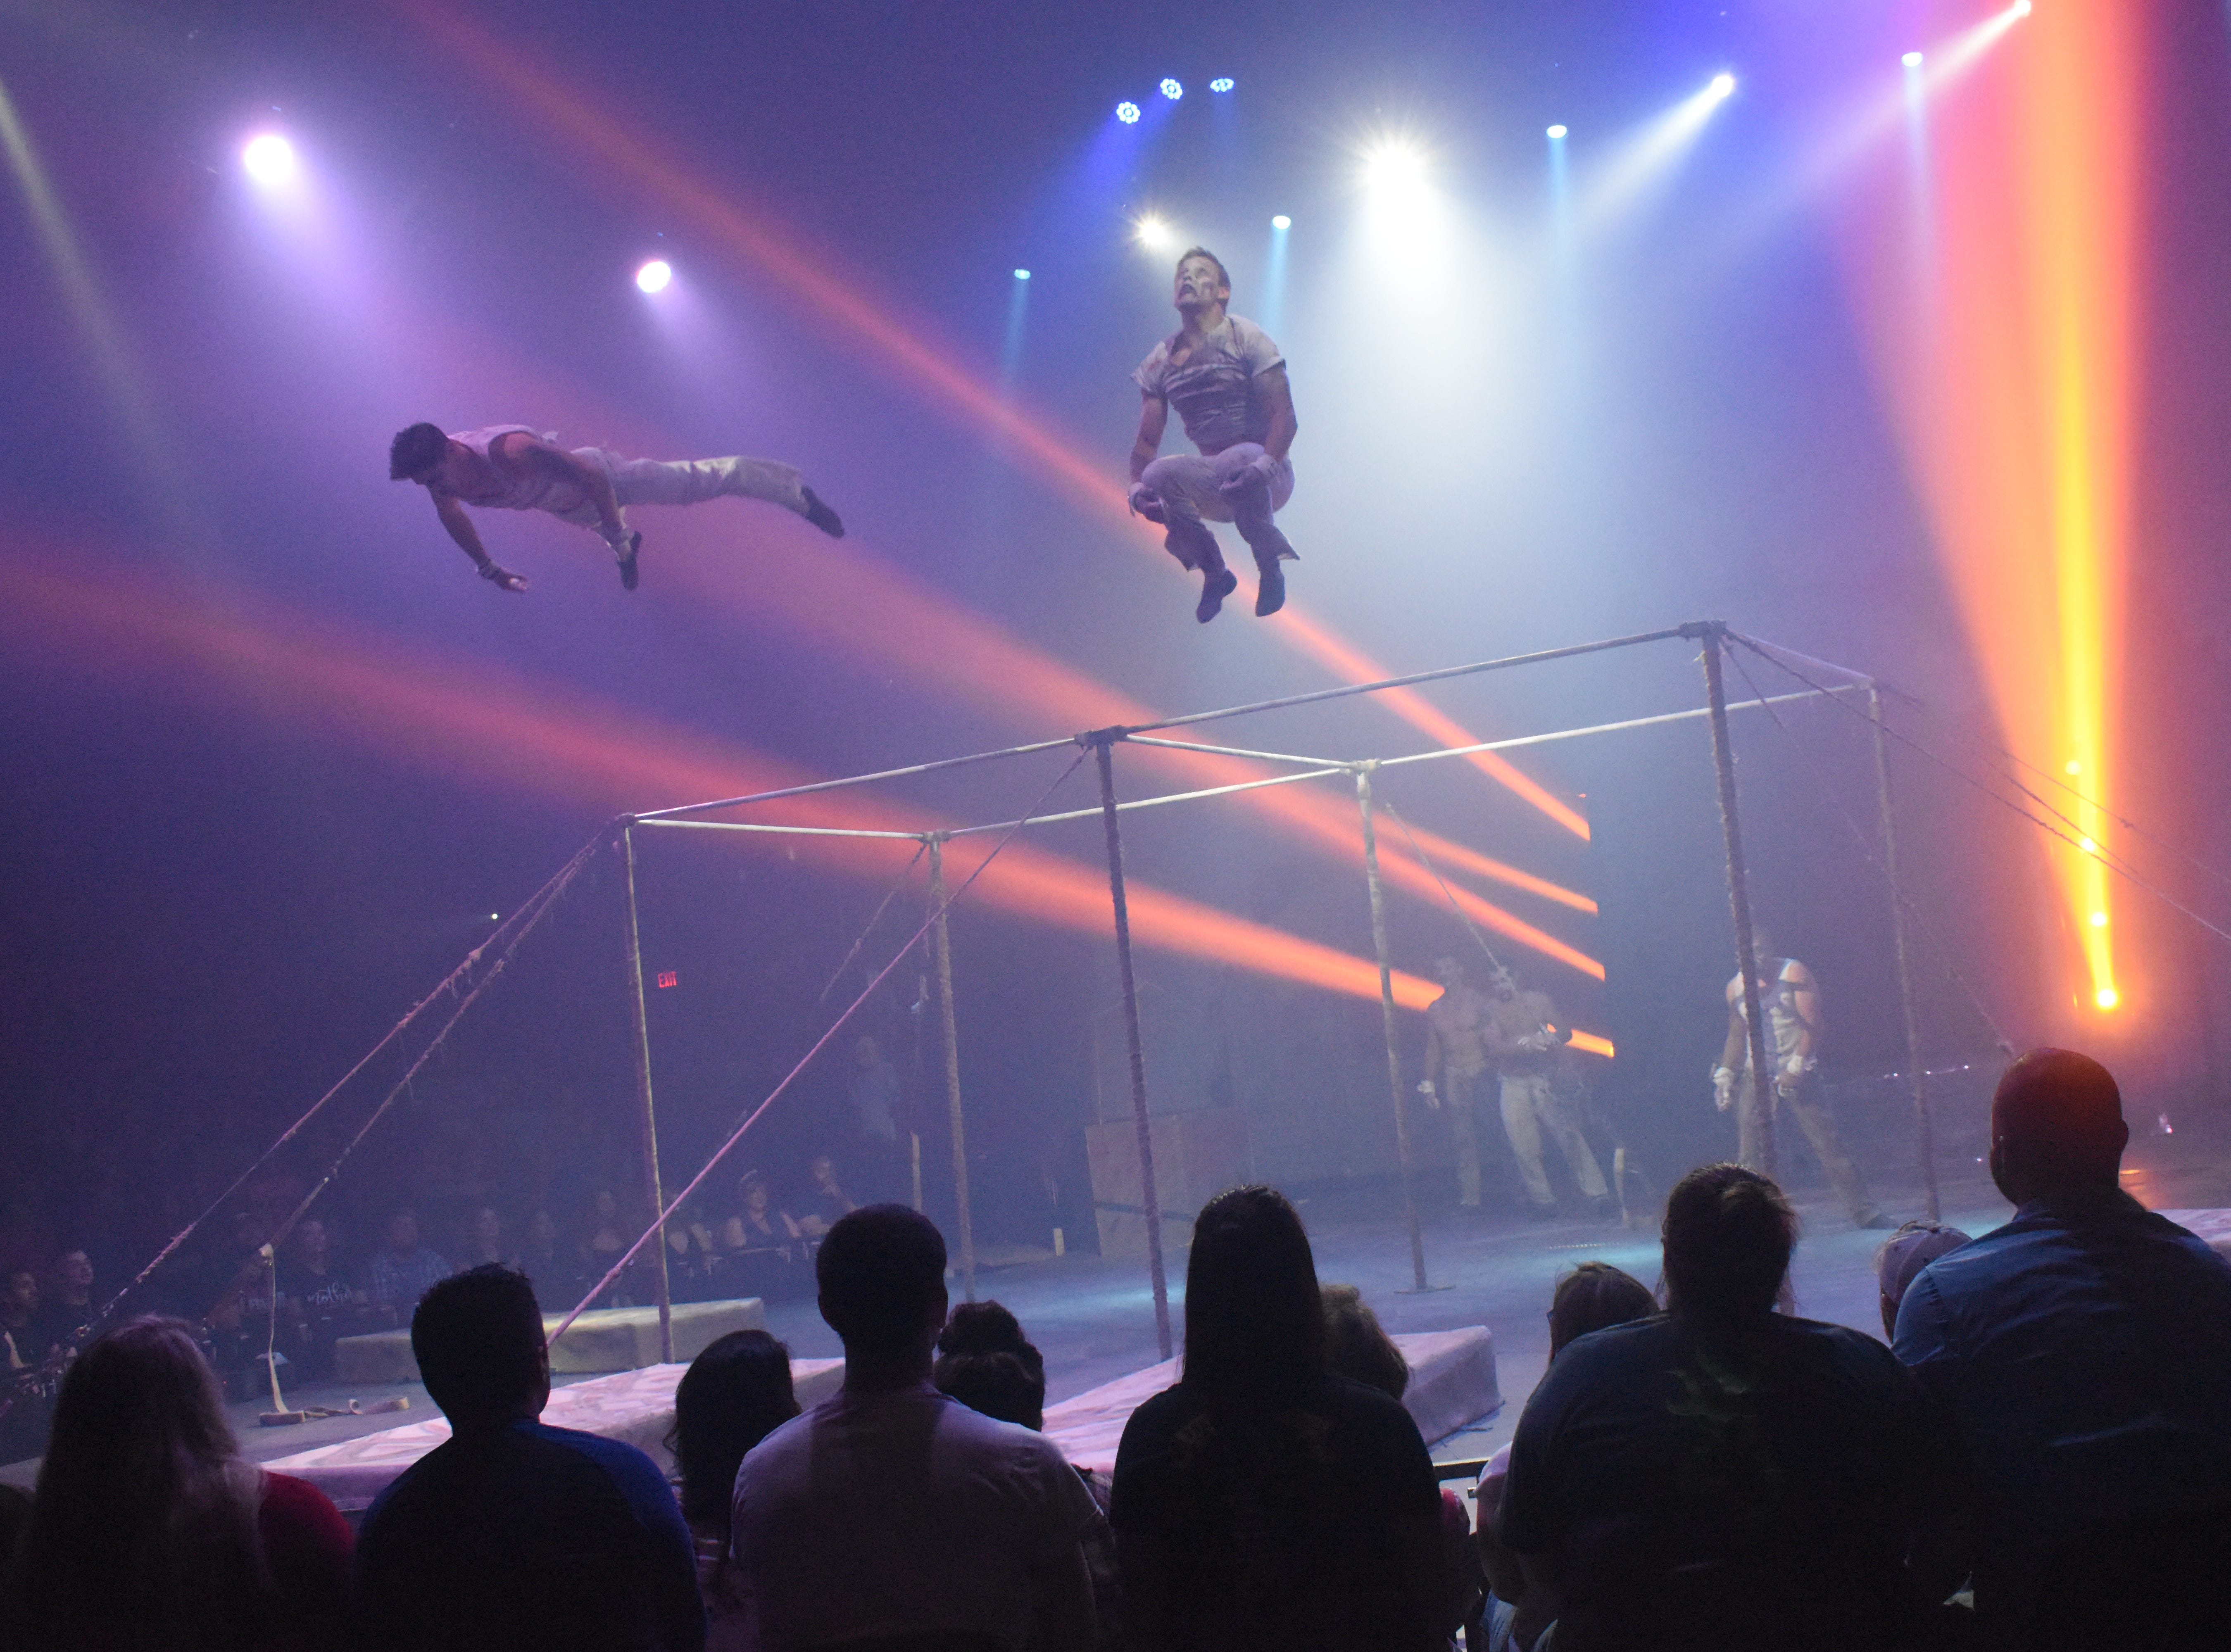 """""""Paranormal Cirque!"""", a presentation of Cirque Italia, opened Thursday, May 9, 2019 in the parking lot of the Alexandria Mall on Masonic Drive. The circus features acrobats, magic, theatrical performances and clowns and has a horror-based theme. Audience members interact with performers in an area that is set up like a horror house prior to entering the main tent for the performance. There is audience interaction during the show as well. The show is geared towards adults and no one under the age of 13 is permitted. Those 13-17 years old must be accompanied by an adult. The theme of """"Paranormal Cirque!"""" has caused controversy with some churches in the area starting a petition to have the Alexandria Mall cancel the performance. Another petition was started by other members in the community for the circus to perform as planned.Performances continue Friday at 7:30 p.m.; Saturday at 6:30 p.m. and 9:30 p.m.; and Sunday at 5:30 p.m. and 8:30 p.m. Ticket prices range from $10-50. For more information visit, www.paranormalcirque.com."""